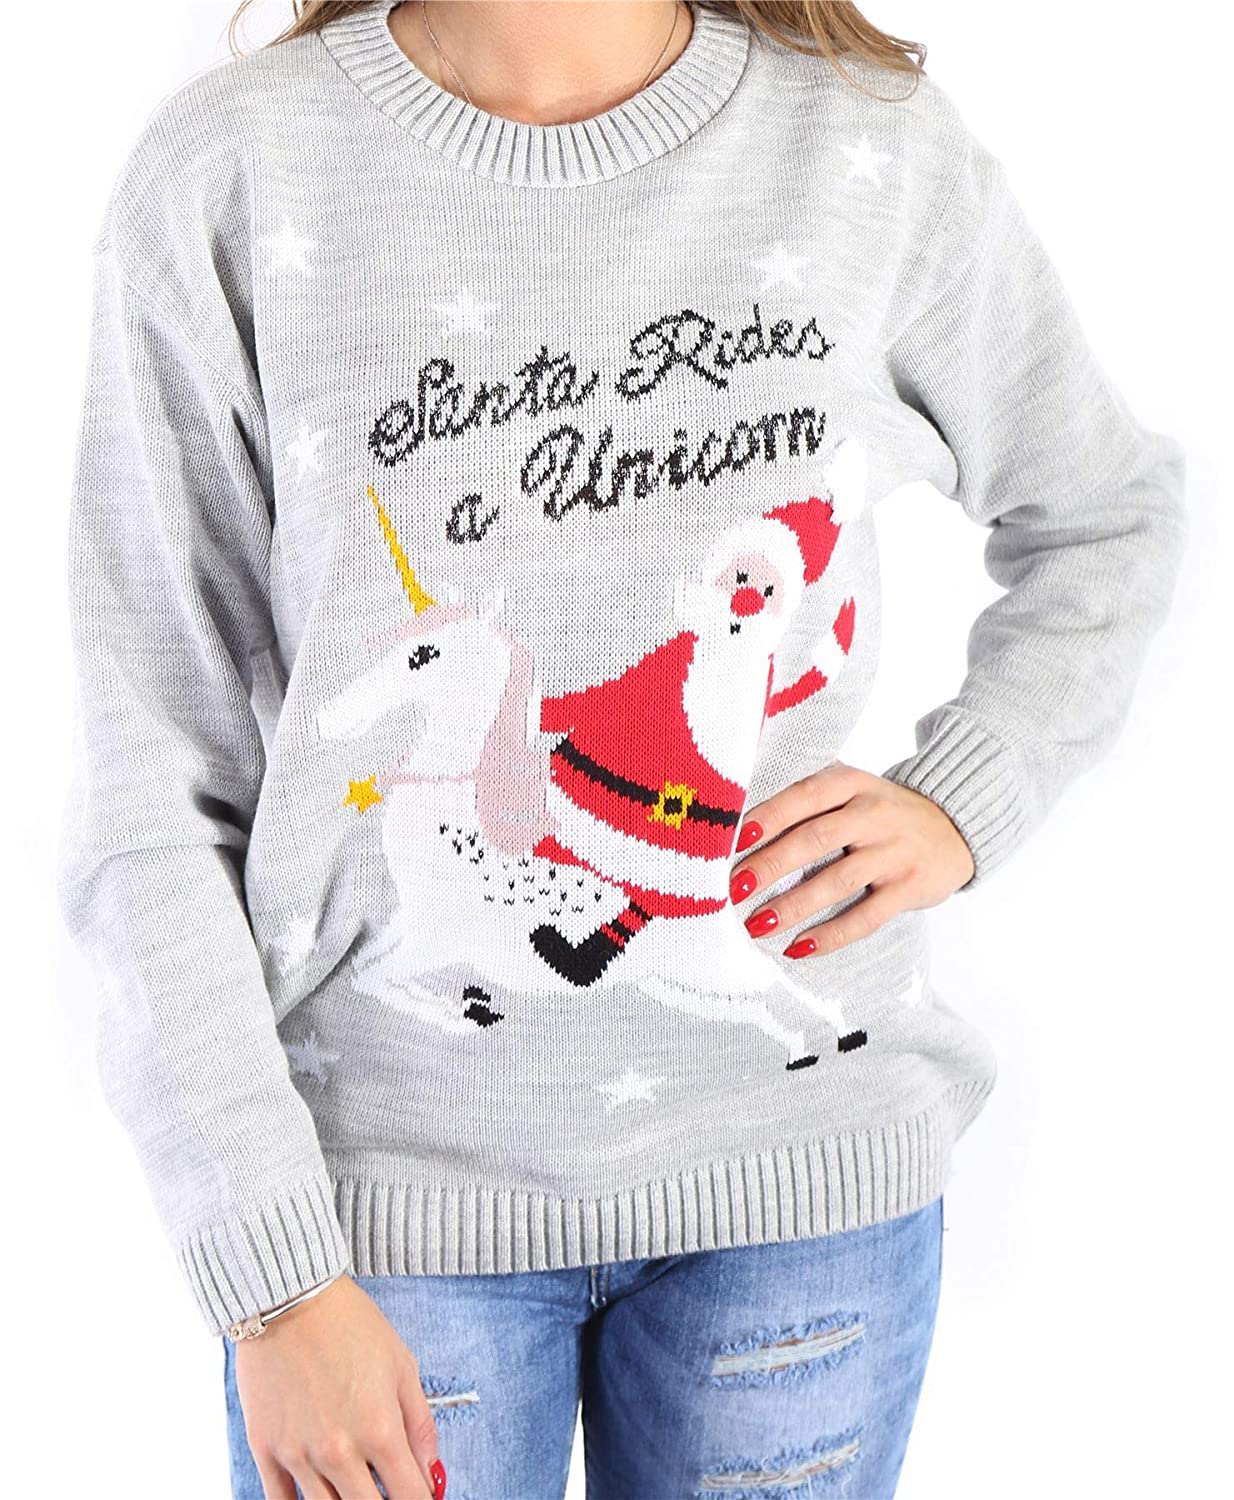 Mymixtrendz/® Kids Boys Girls Unisex Xmas Christmas Santa Suit Mr Cool Unicorn Pullover Long Sleeves Knitted Jumper Top